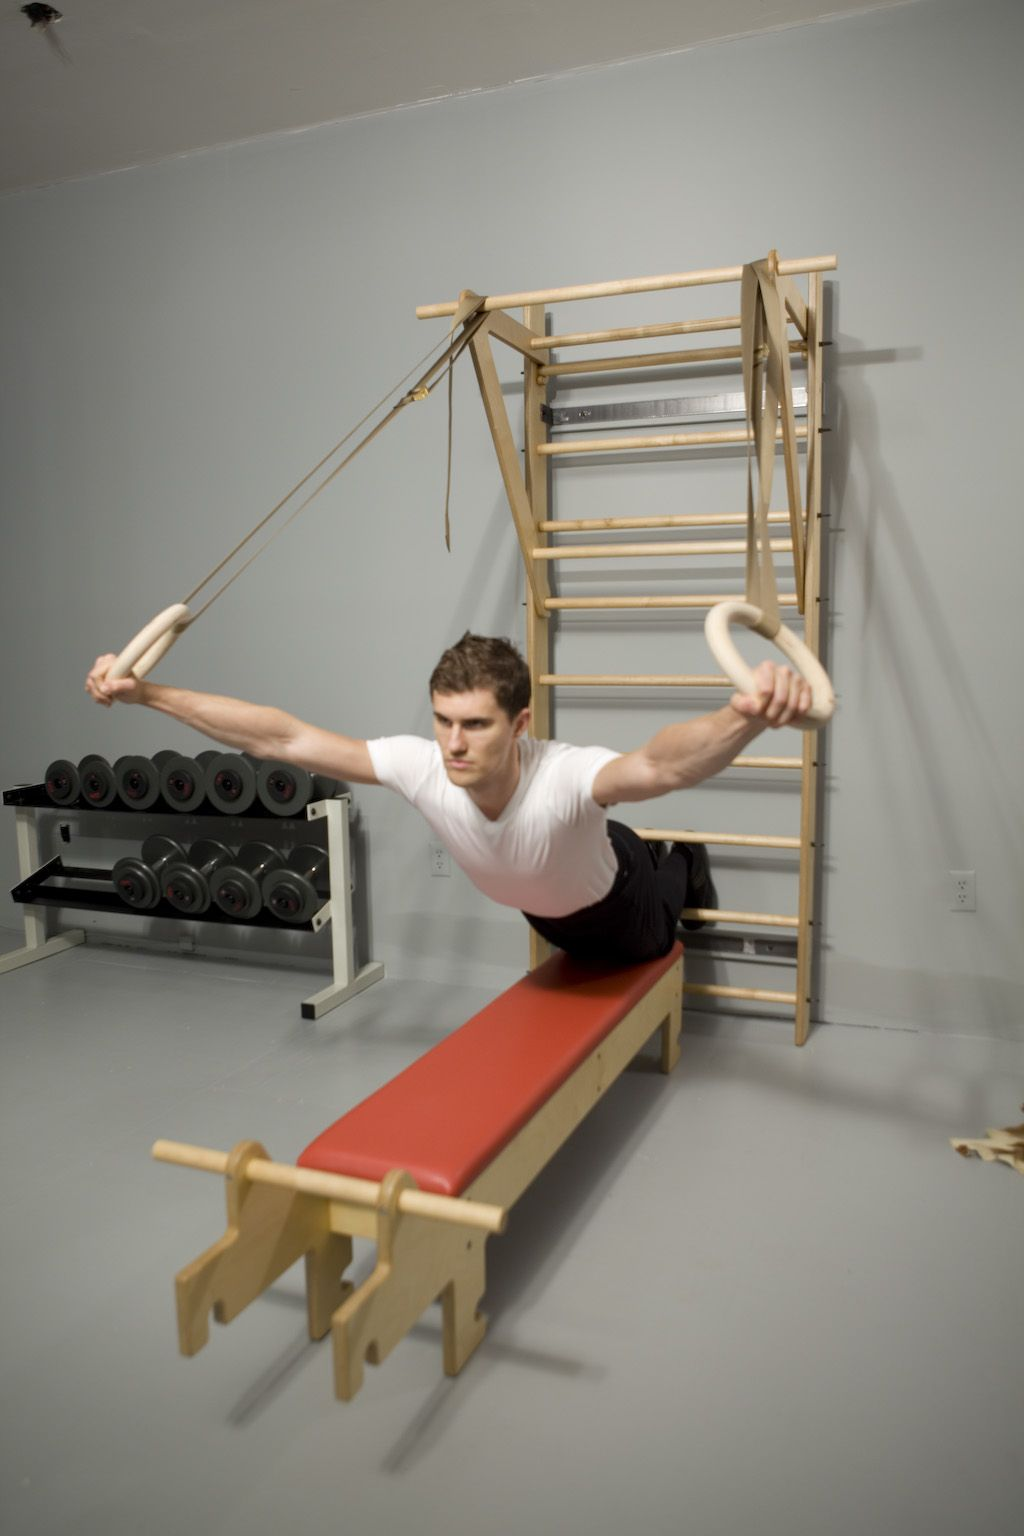 Stall Bars, Swedish Ladder, FORMA Totus www.thegymdesign.com | Christof Prus